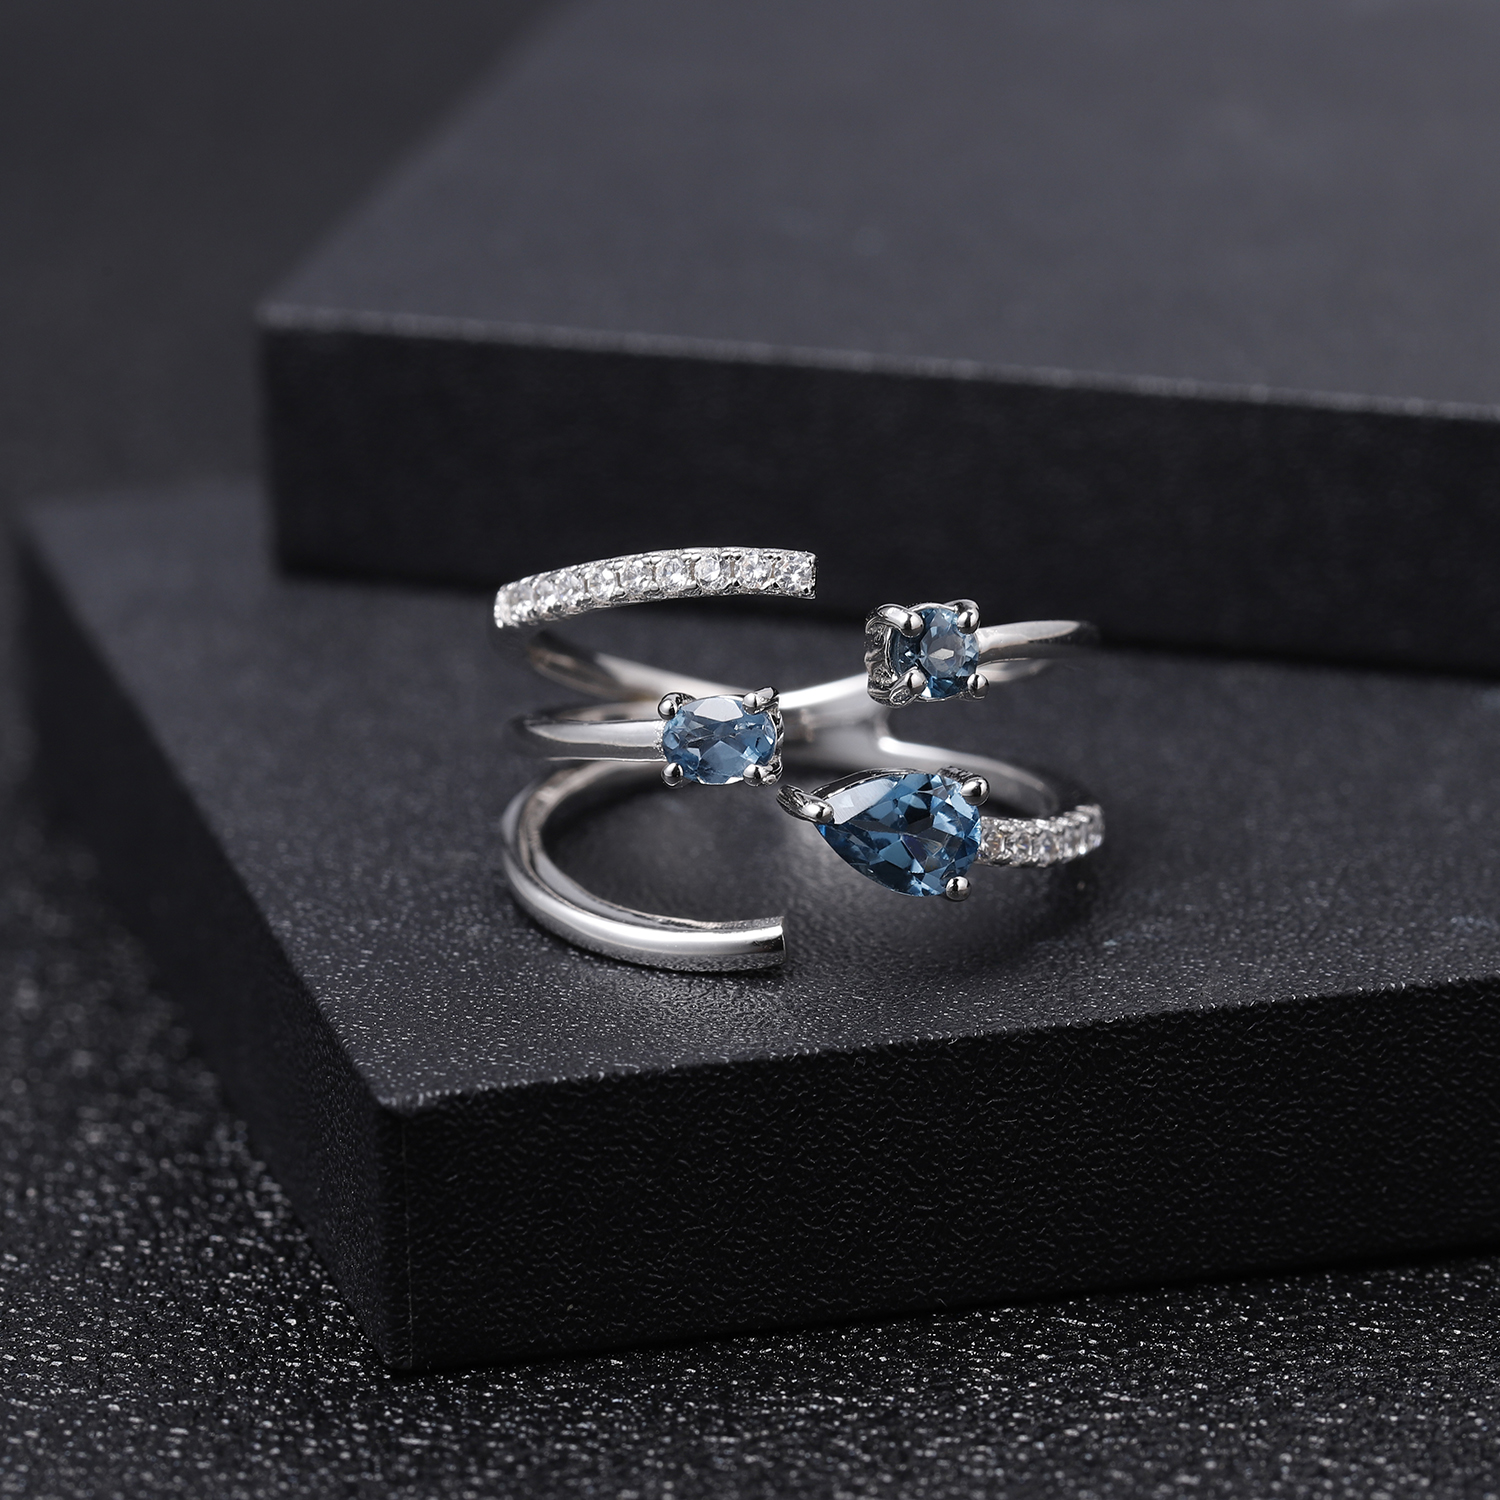 GEM'S BALLET 925 Sterling Silver Adjustable Open Gemstone Ring 0.83Ct Natural London Blue Topaz Band Ring For Women Fine Jewelry